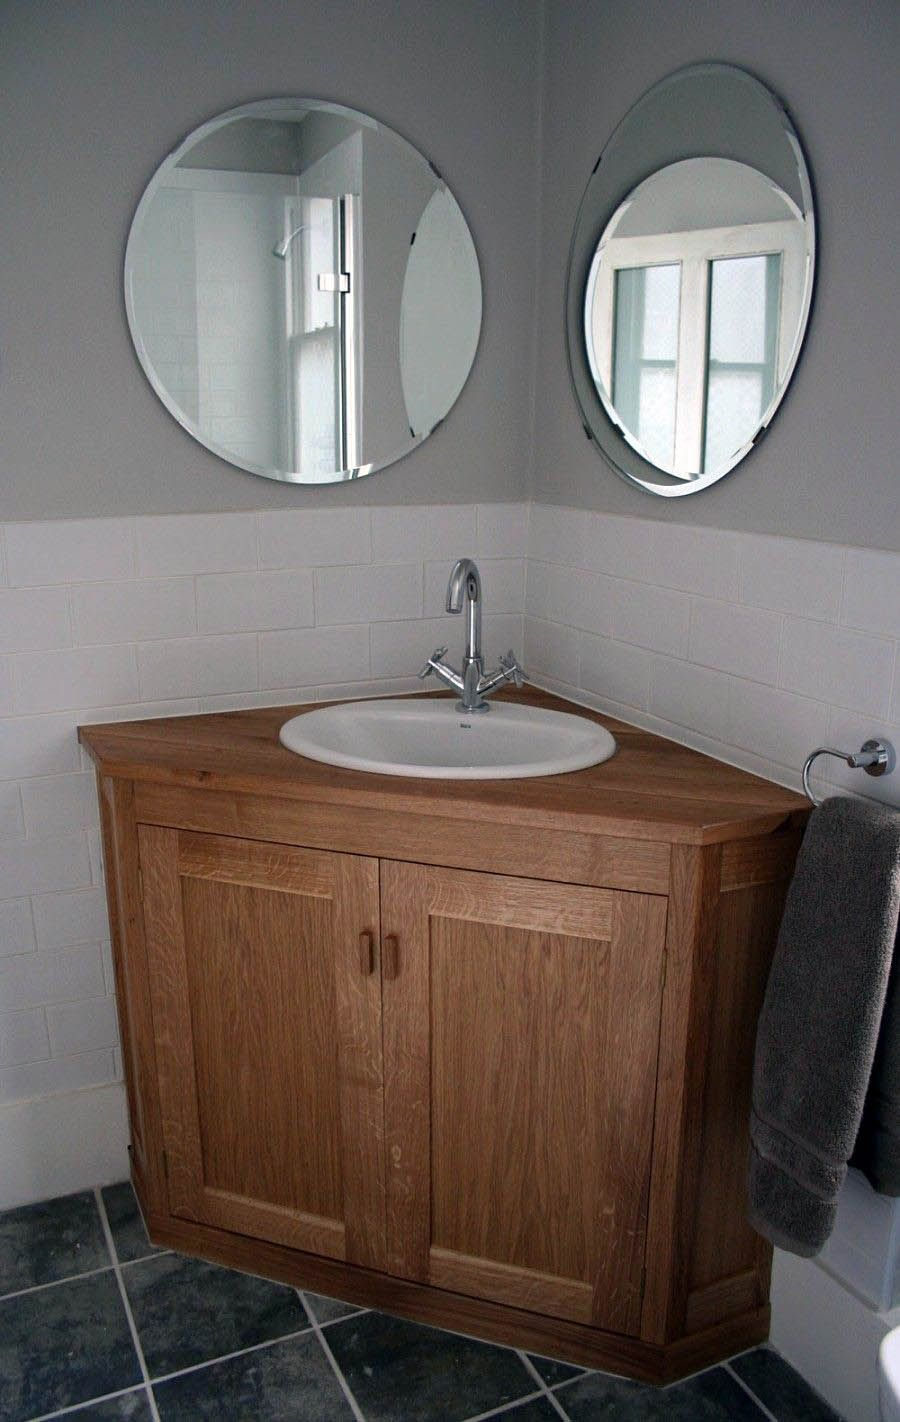 Stylish Ways To Decorate Bathroom Vanities Dallas Just On Homesable Com Corner Sink Bathroom Corner Bathroom Vanity Shabby Chic Bathroom